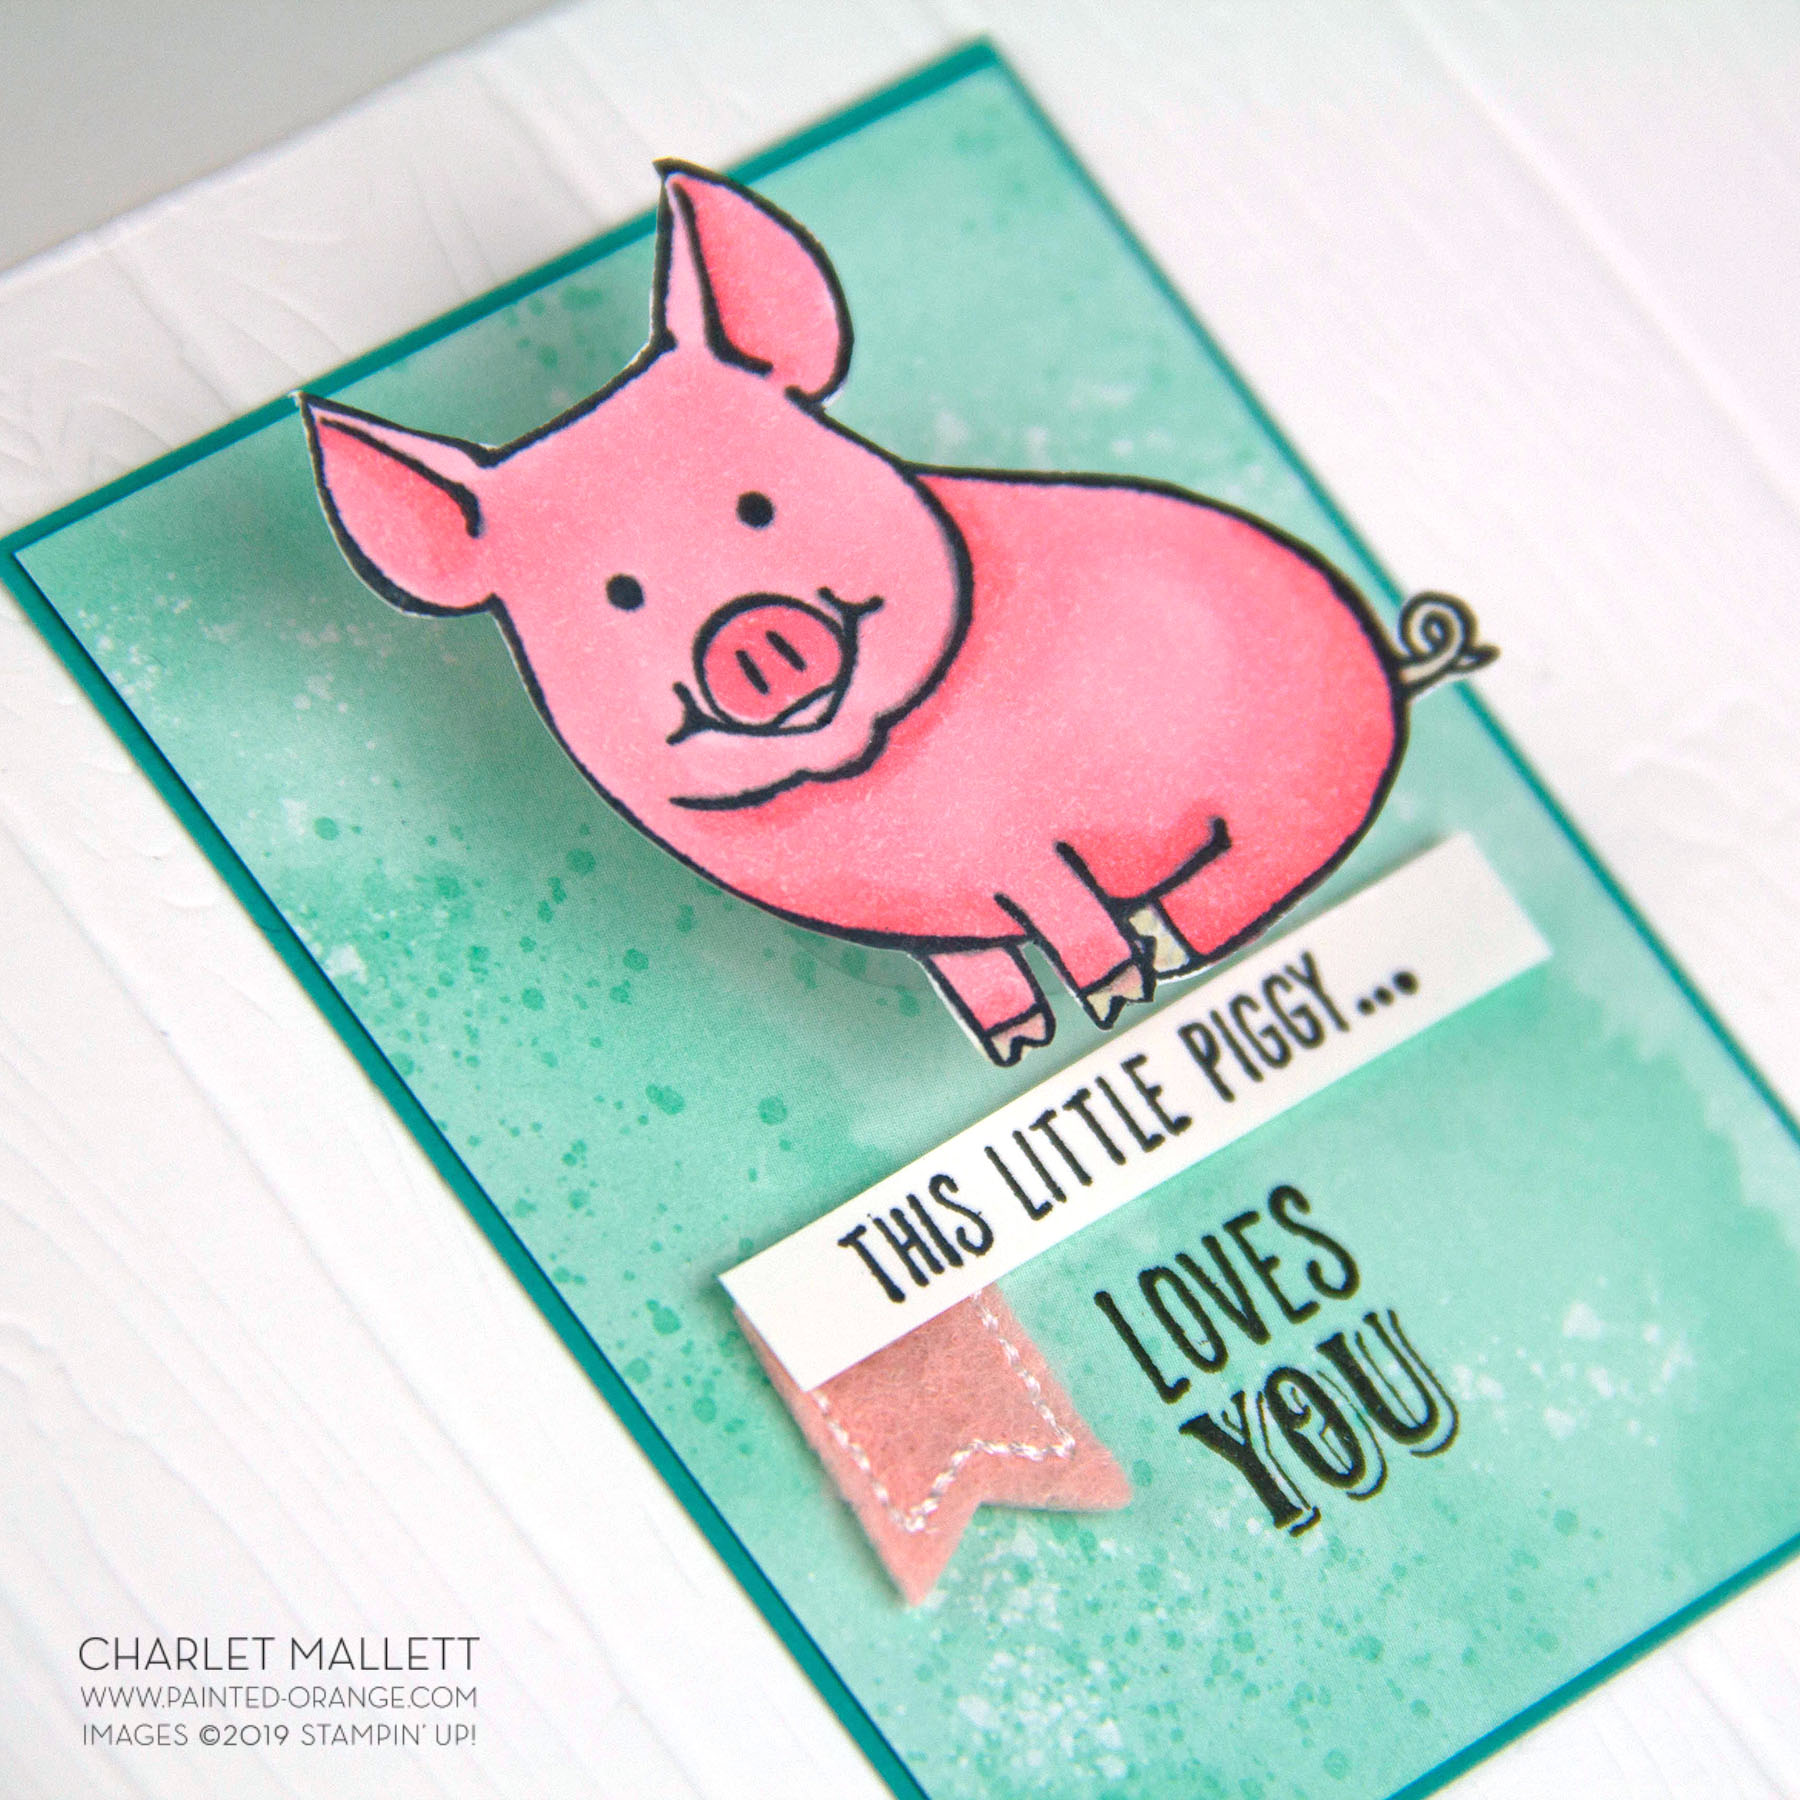 This Little Piggy card - Charlet Mallett, Stampin' Up!